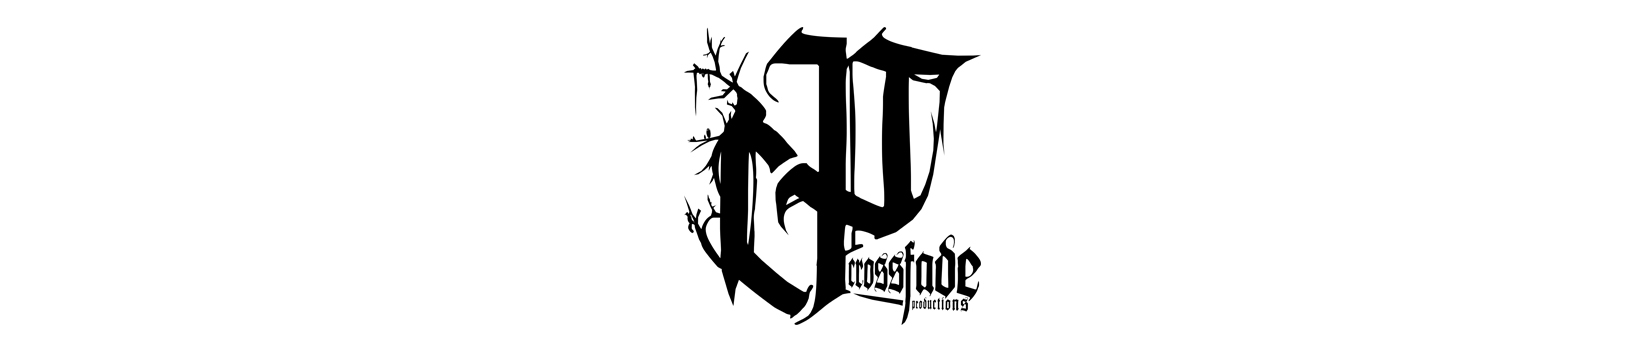 Crossfade Productions